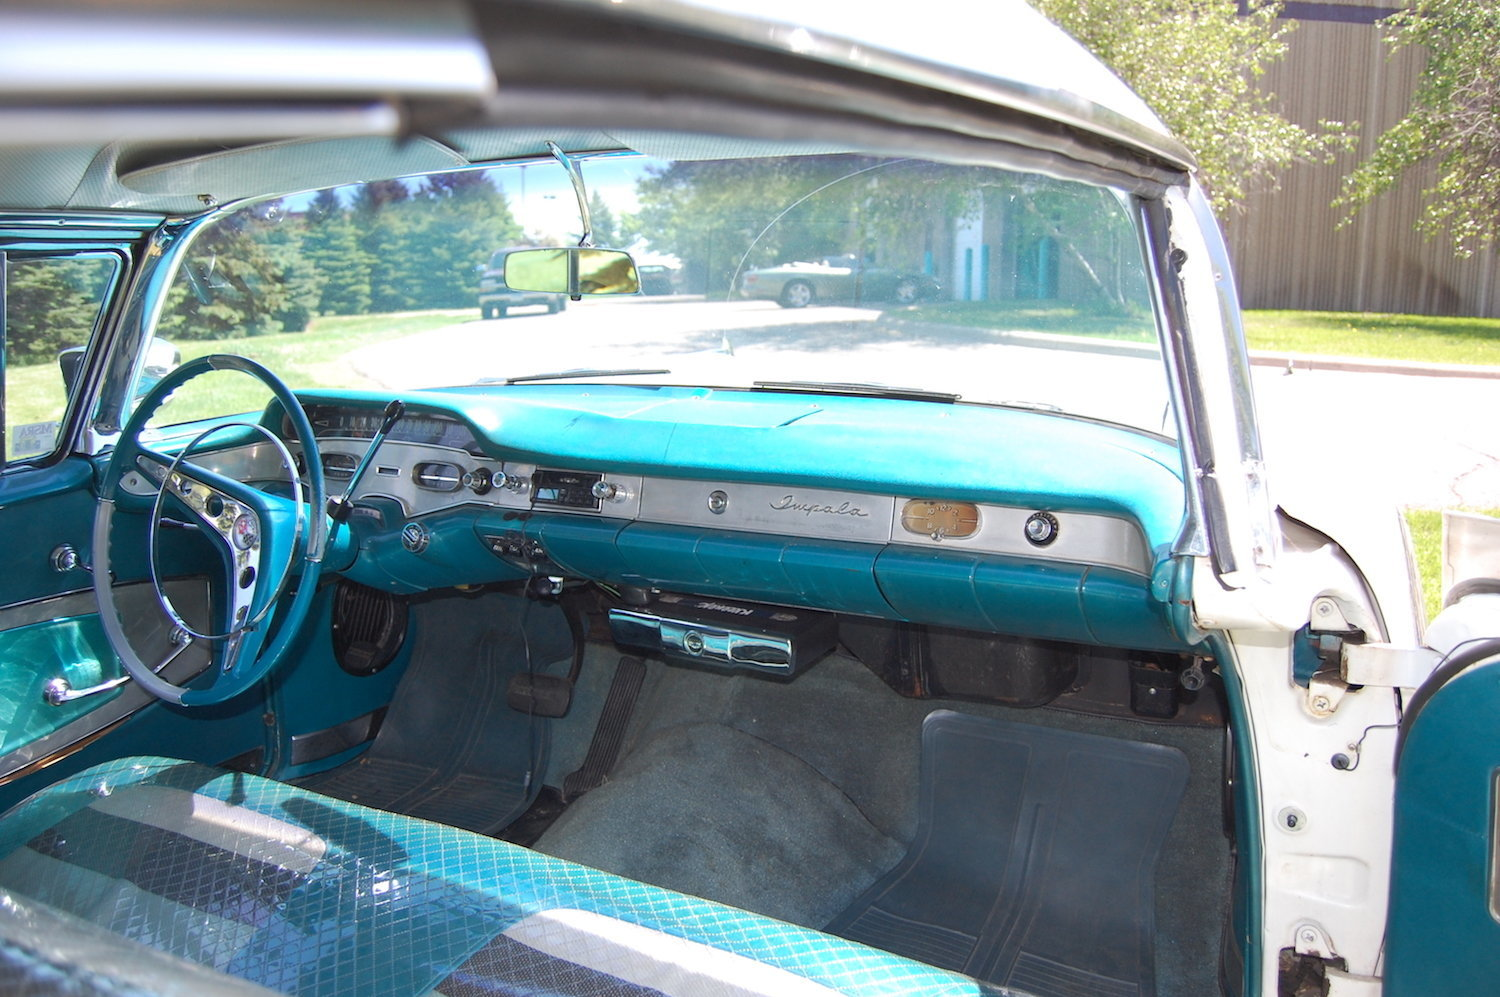 1958 chevrolet impala classic car dealer rogers minnesota ellingson motorcars. Black Bedroom Furniture Sets. Home Design Ideas